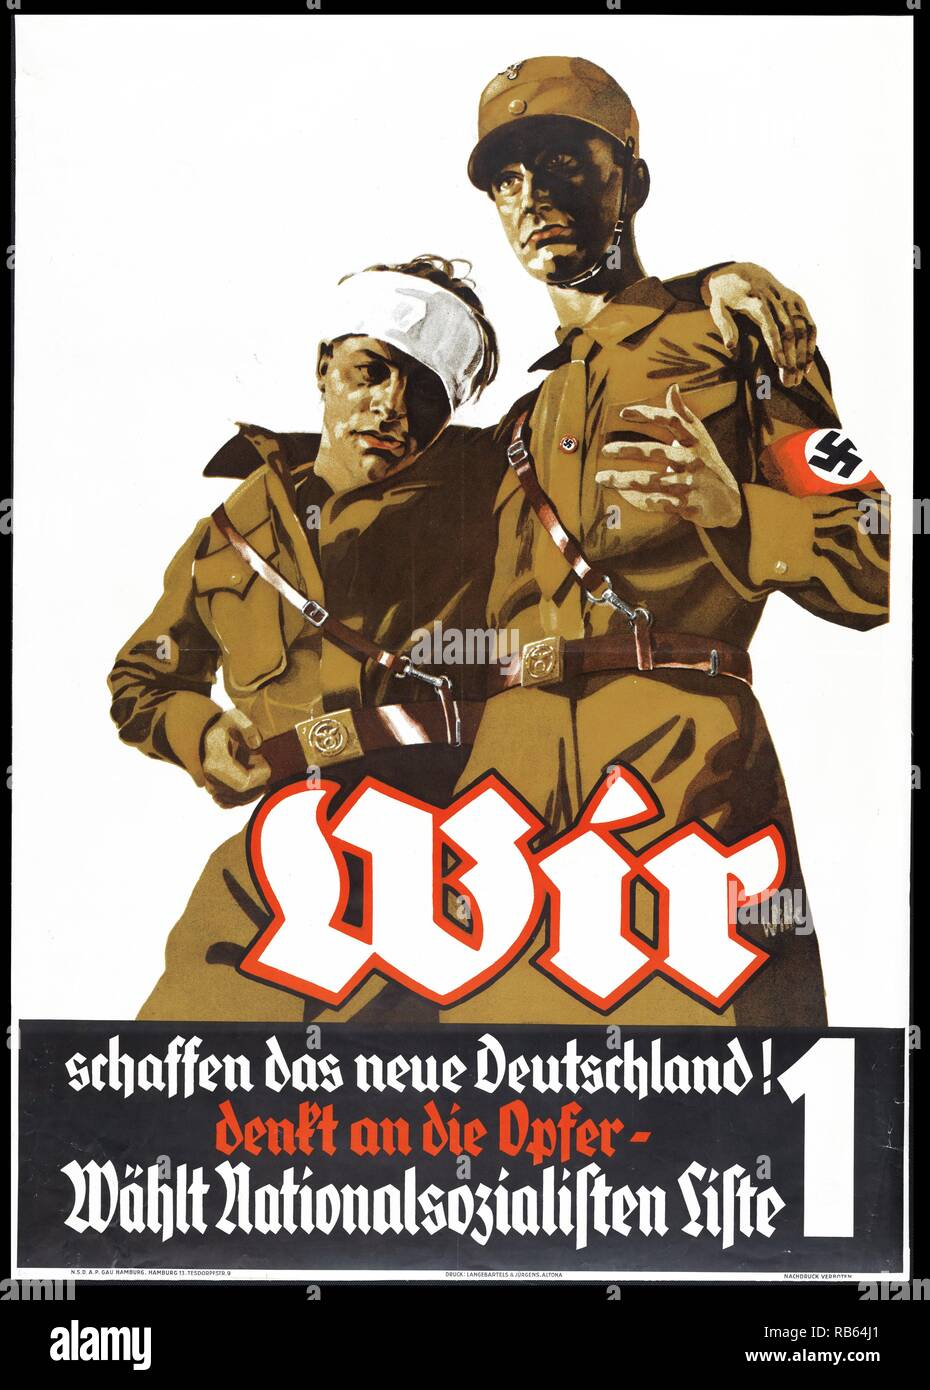 Wir schaffen das neue Deutschland! Denkt an die Opfer-wAohlt Nationalsozialisten Liste 1. Propaganda poster announcing political campaign for the Nazi party in Germany, showing two soldiers, one with a bandage around his head. The poster states that the National Socialists are creating a new Germany, making sacrifices, and asks voters to choose the Nationalsozialistische Deutsche Arbeiter-Partei, number 1 on the list. Stock Photo